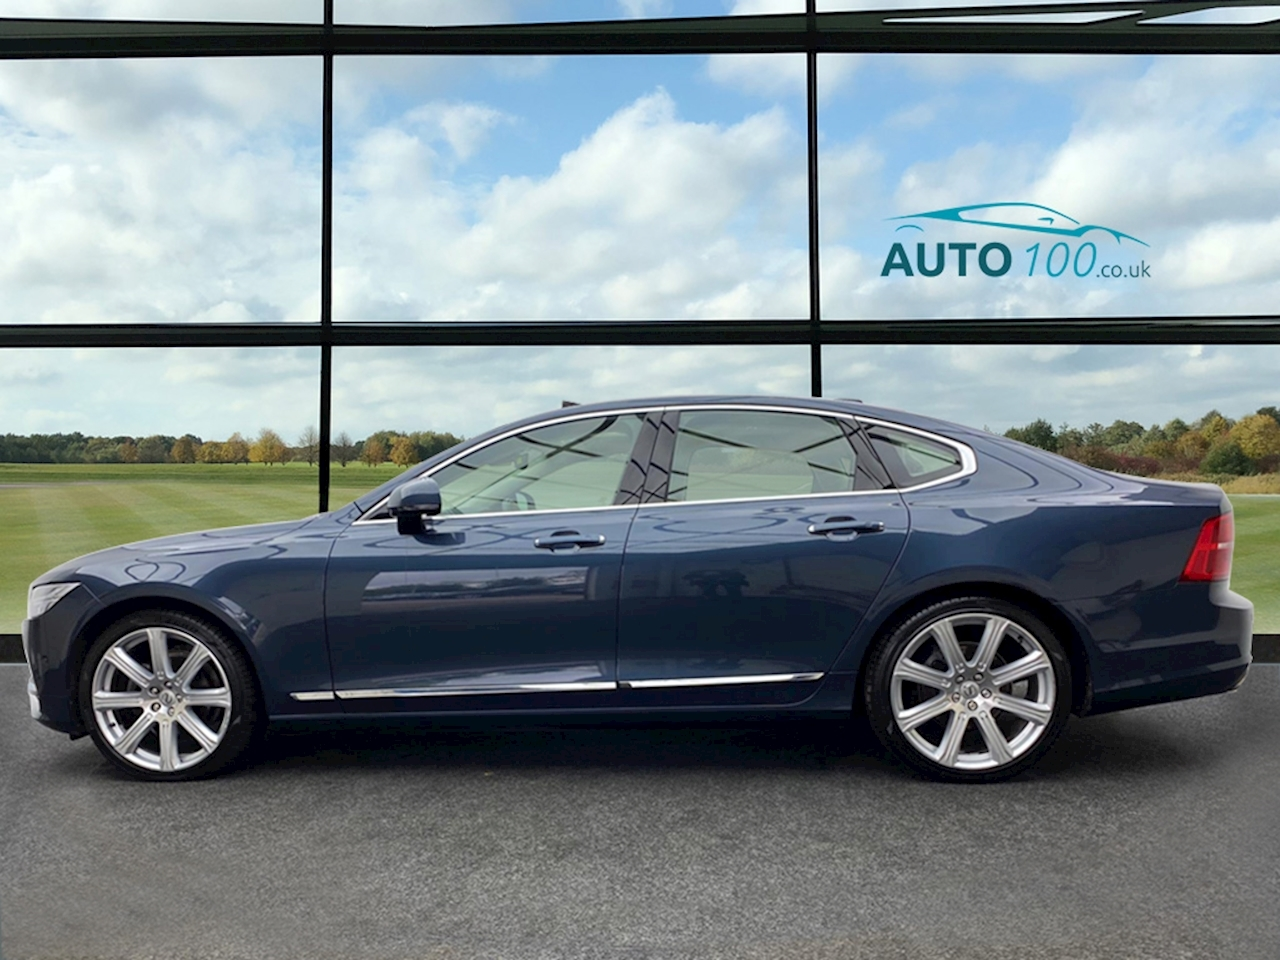 Volvo S90 D4 Inscription Pro Hatchback 2.0 Automatic Diesel